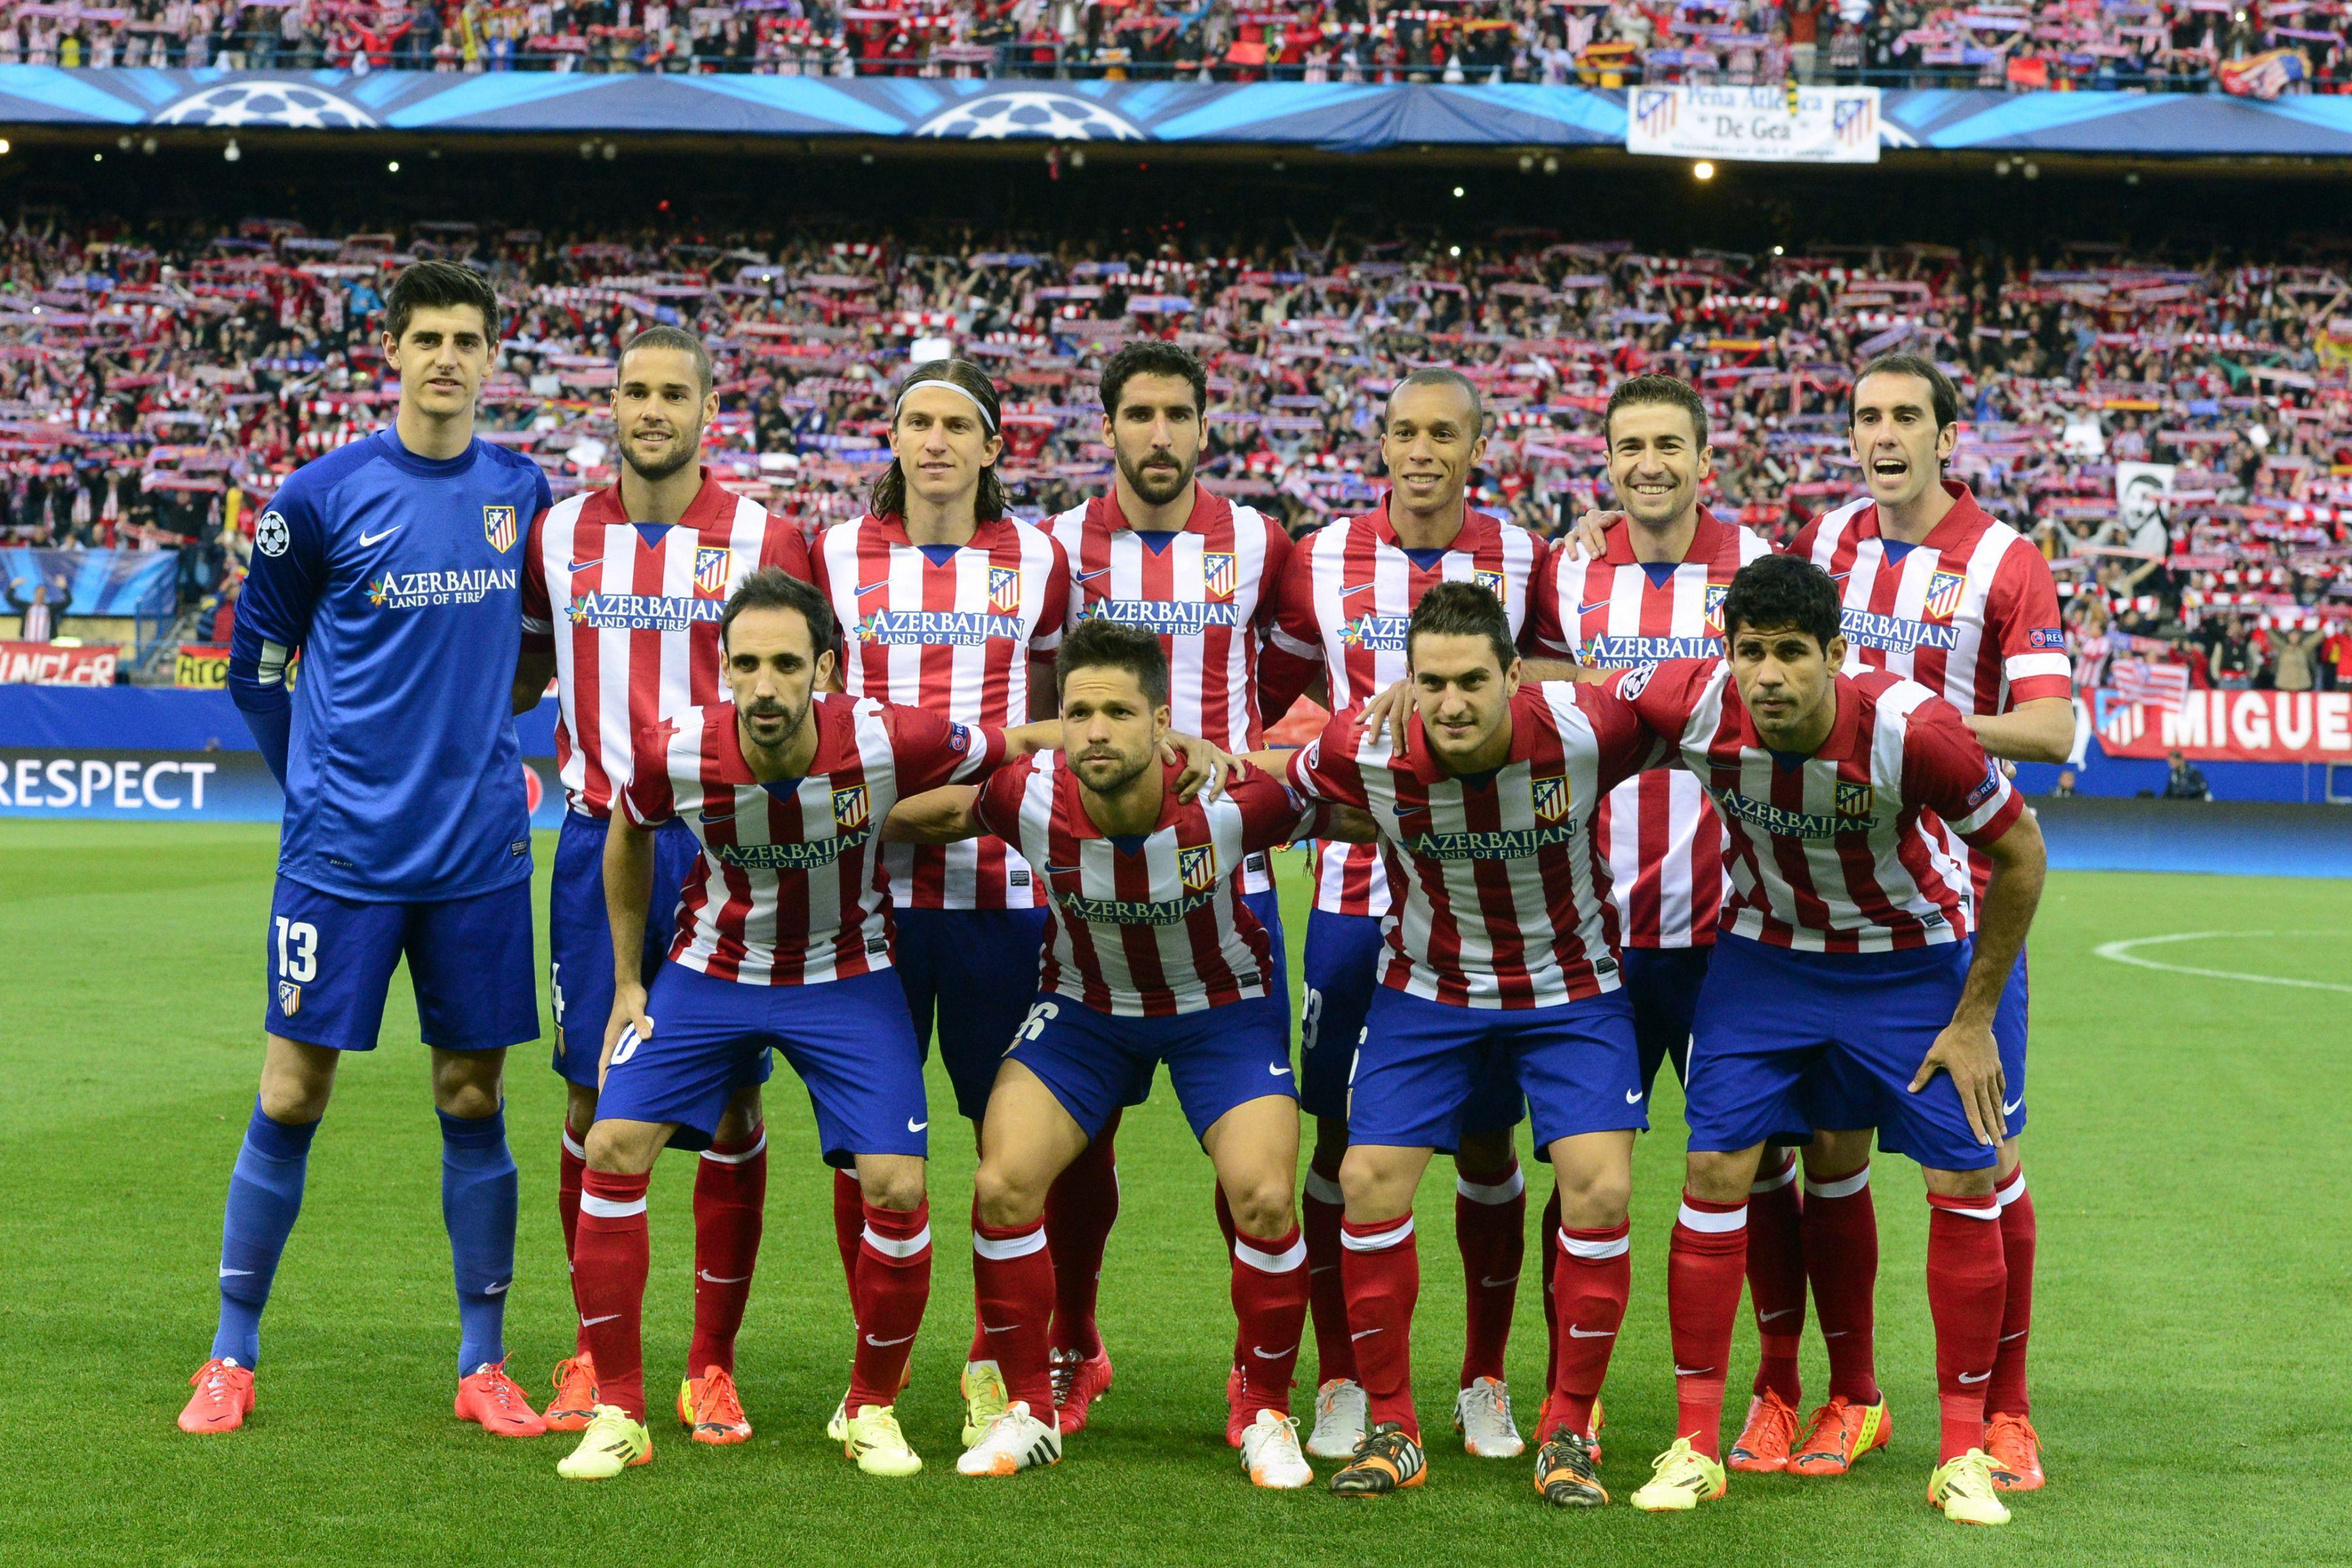 The goalkeeper was part of the Atleti side that won La Liga in 2013-14